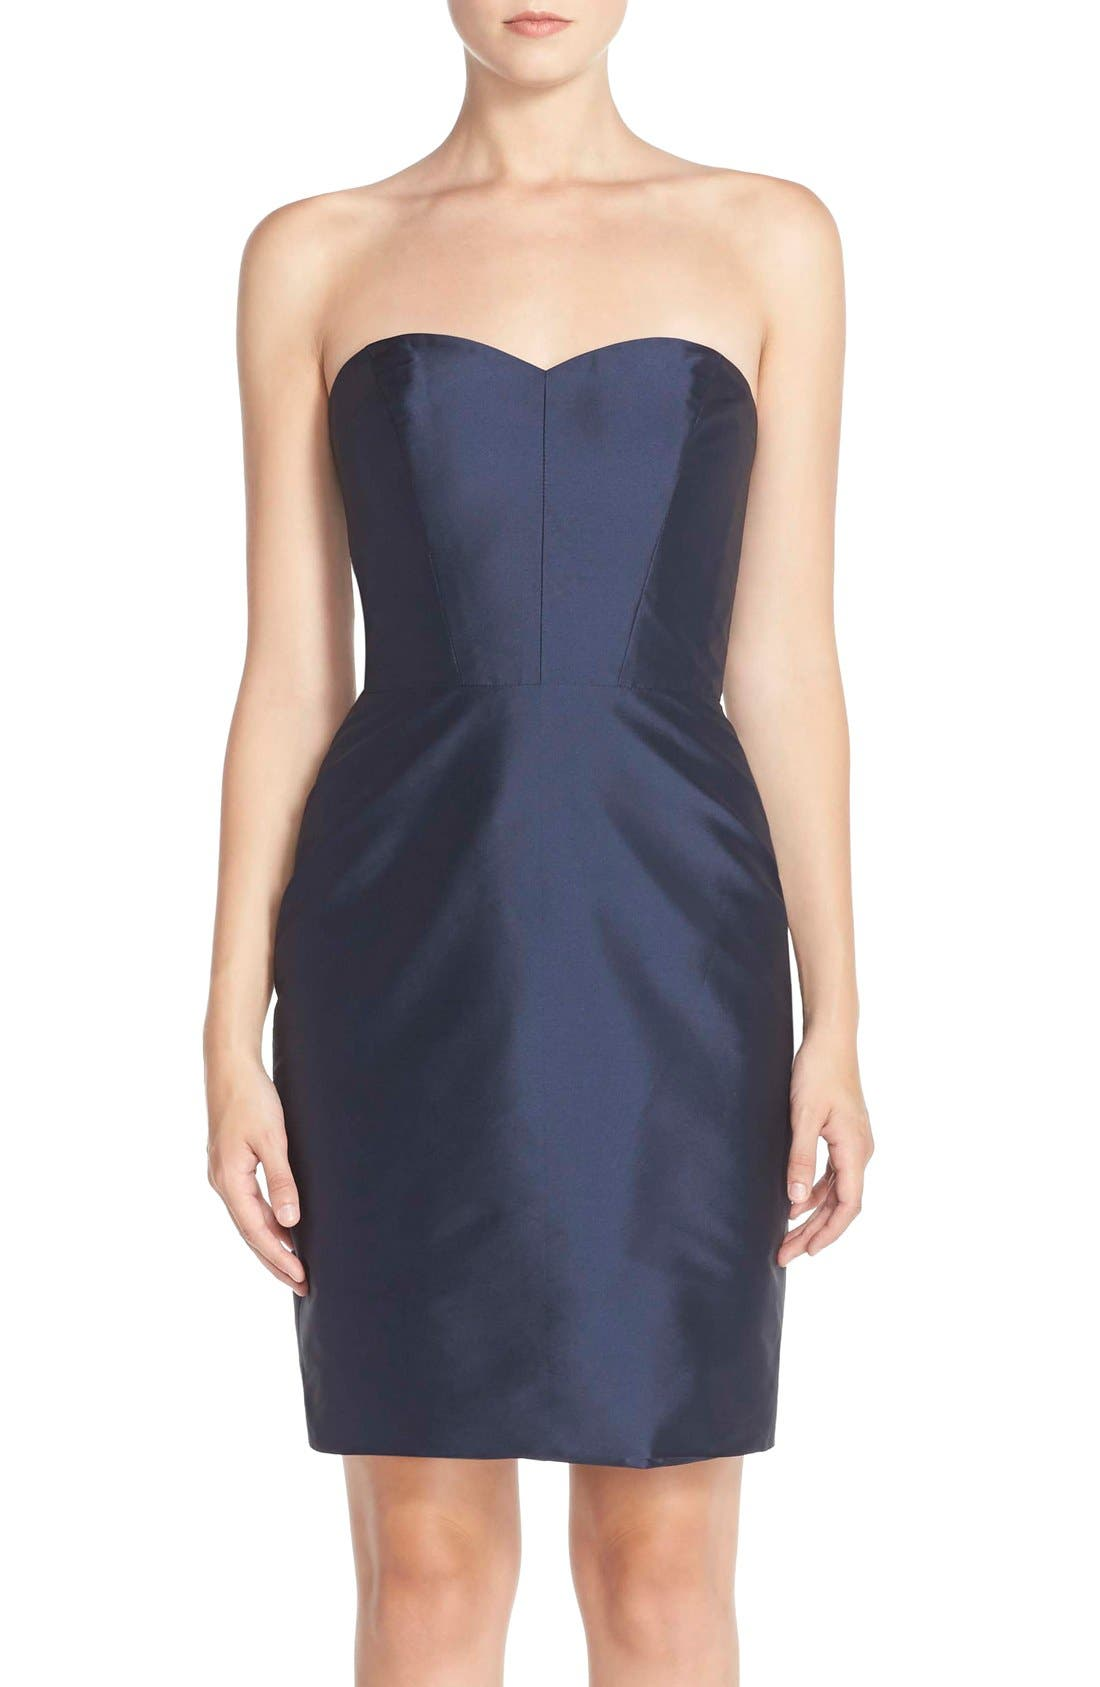 Alternate Image 1 Selected - Monique Lhuillier Bridesmaids Strapless Taffeta Sheath Dress